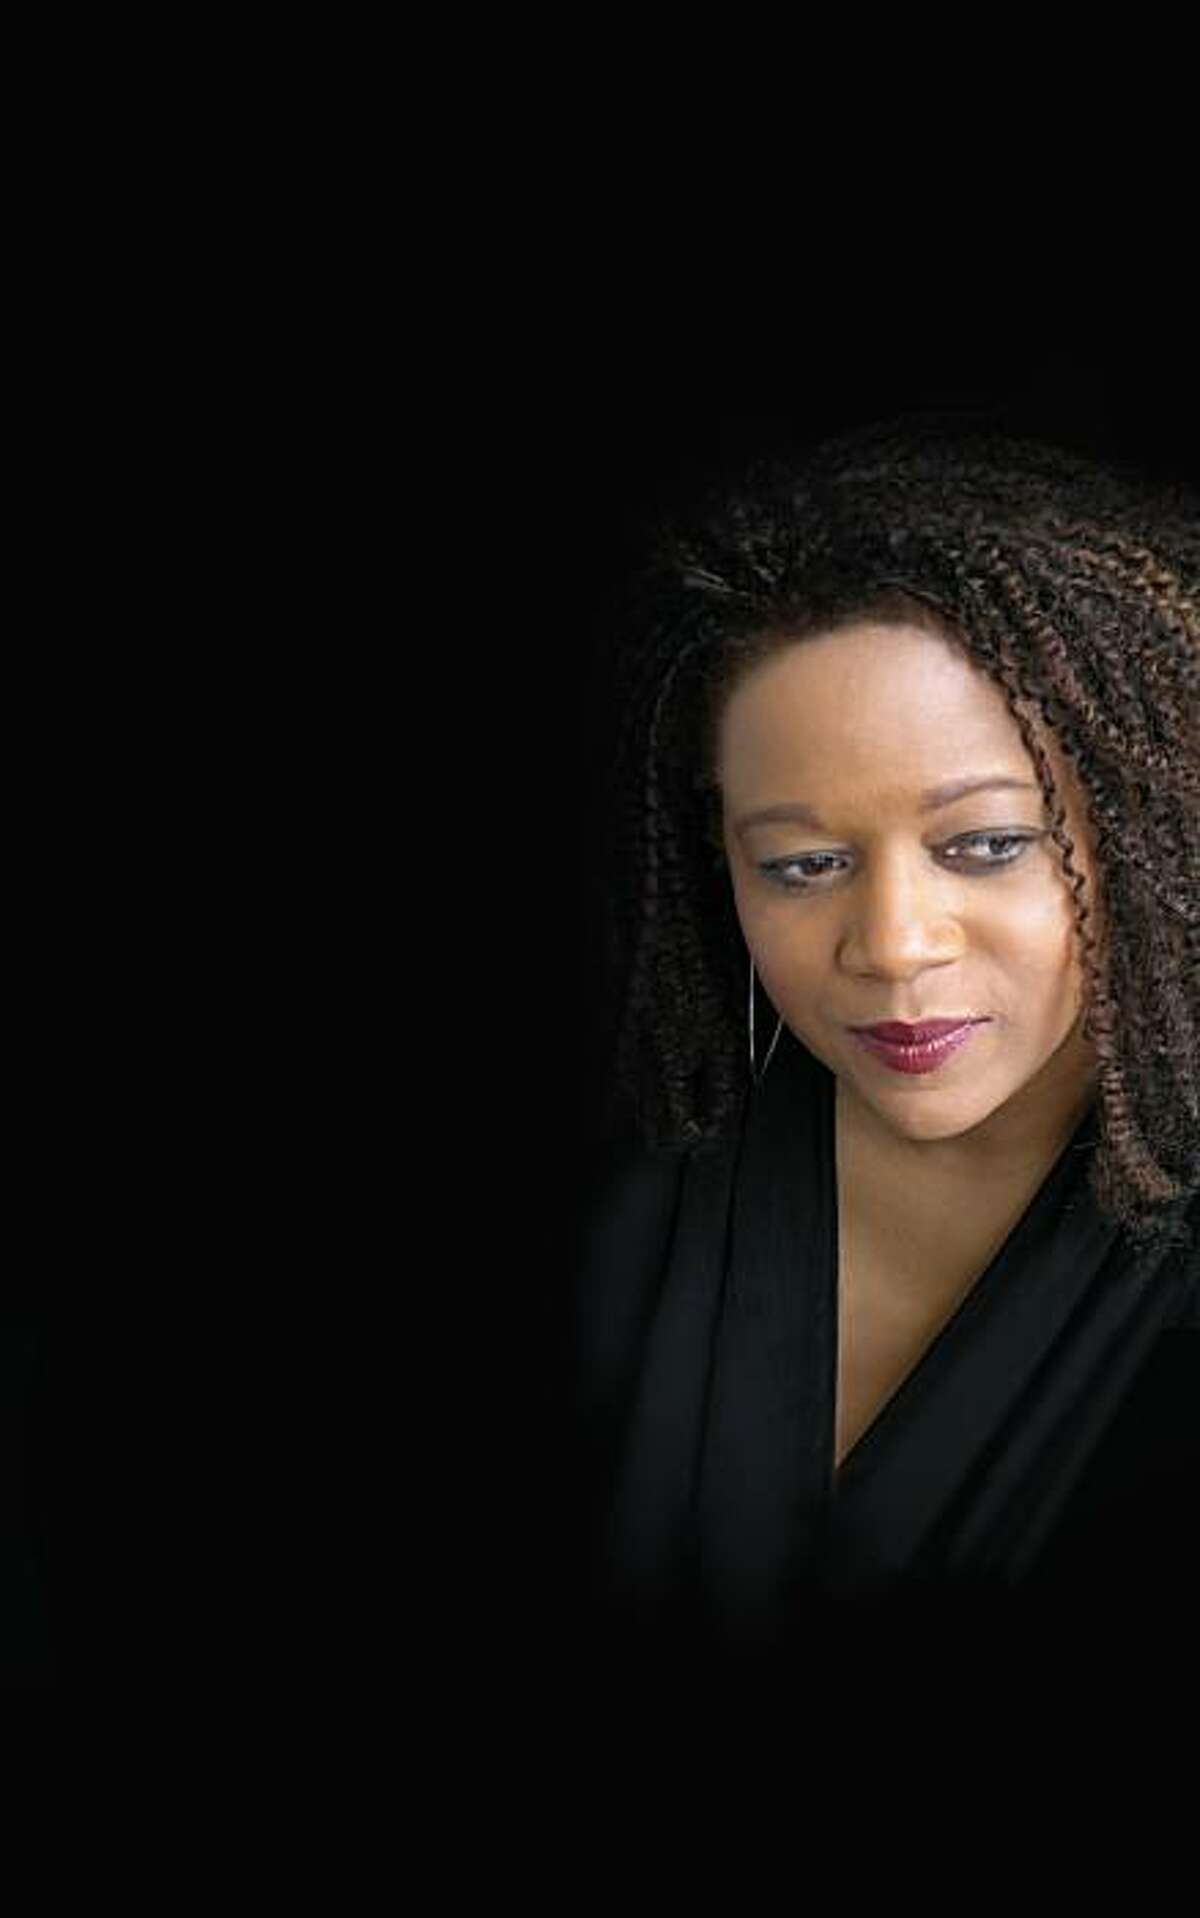 Jazz vocalist Paula West, who begins a six-week residency at The Rrazz Room on Tuesday, guides us through the highlights of her record collection. OLYMPUS DIGITAL CAMERA